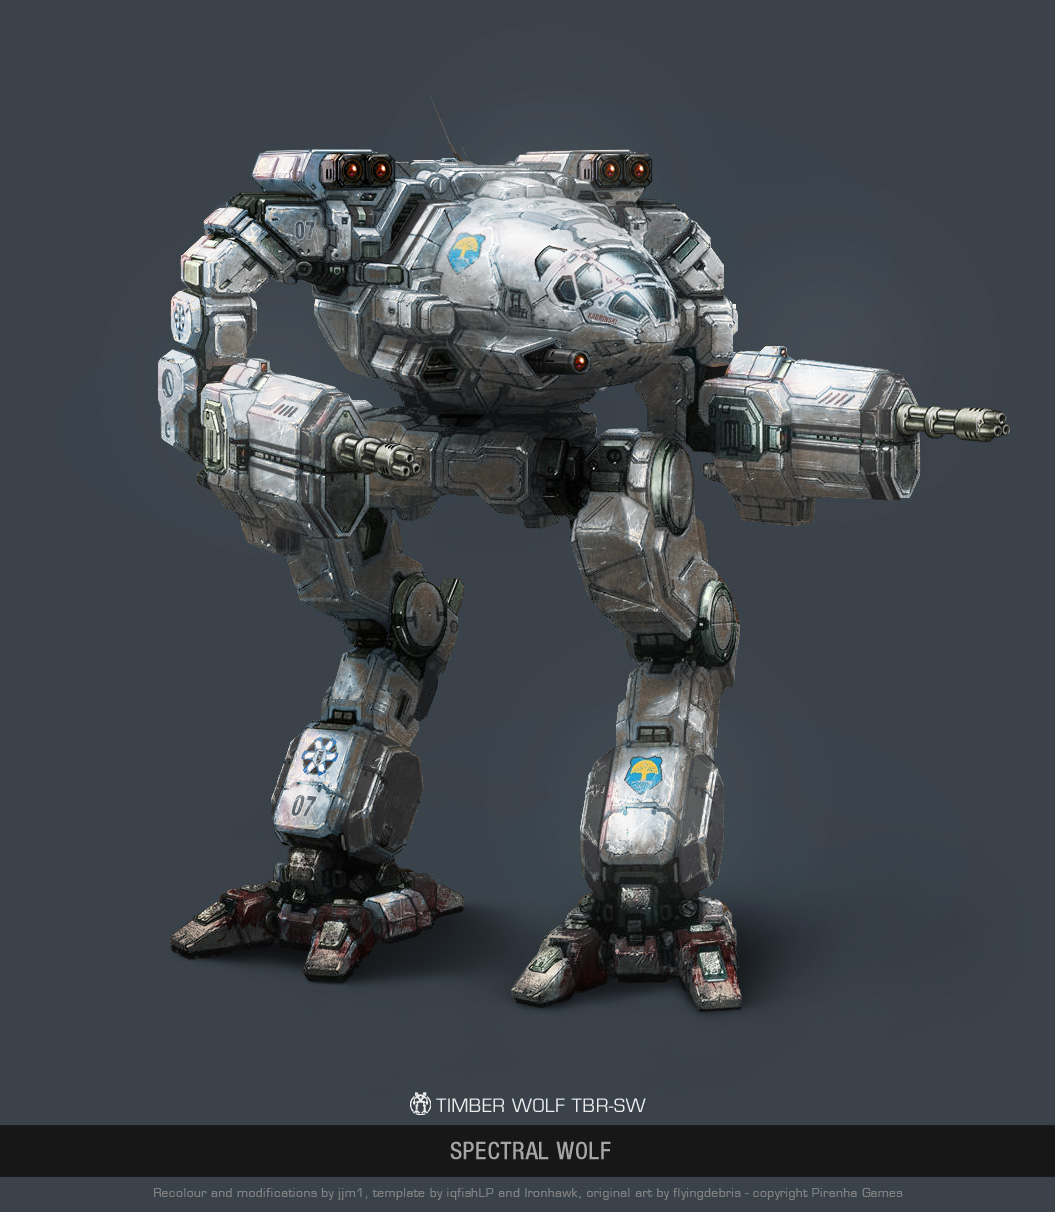 mwo timber wolf spectral wolf by user000000000001 on